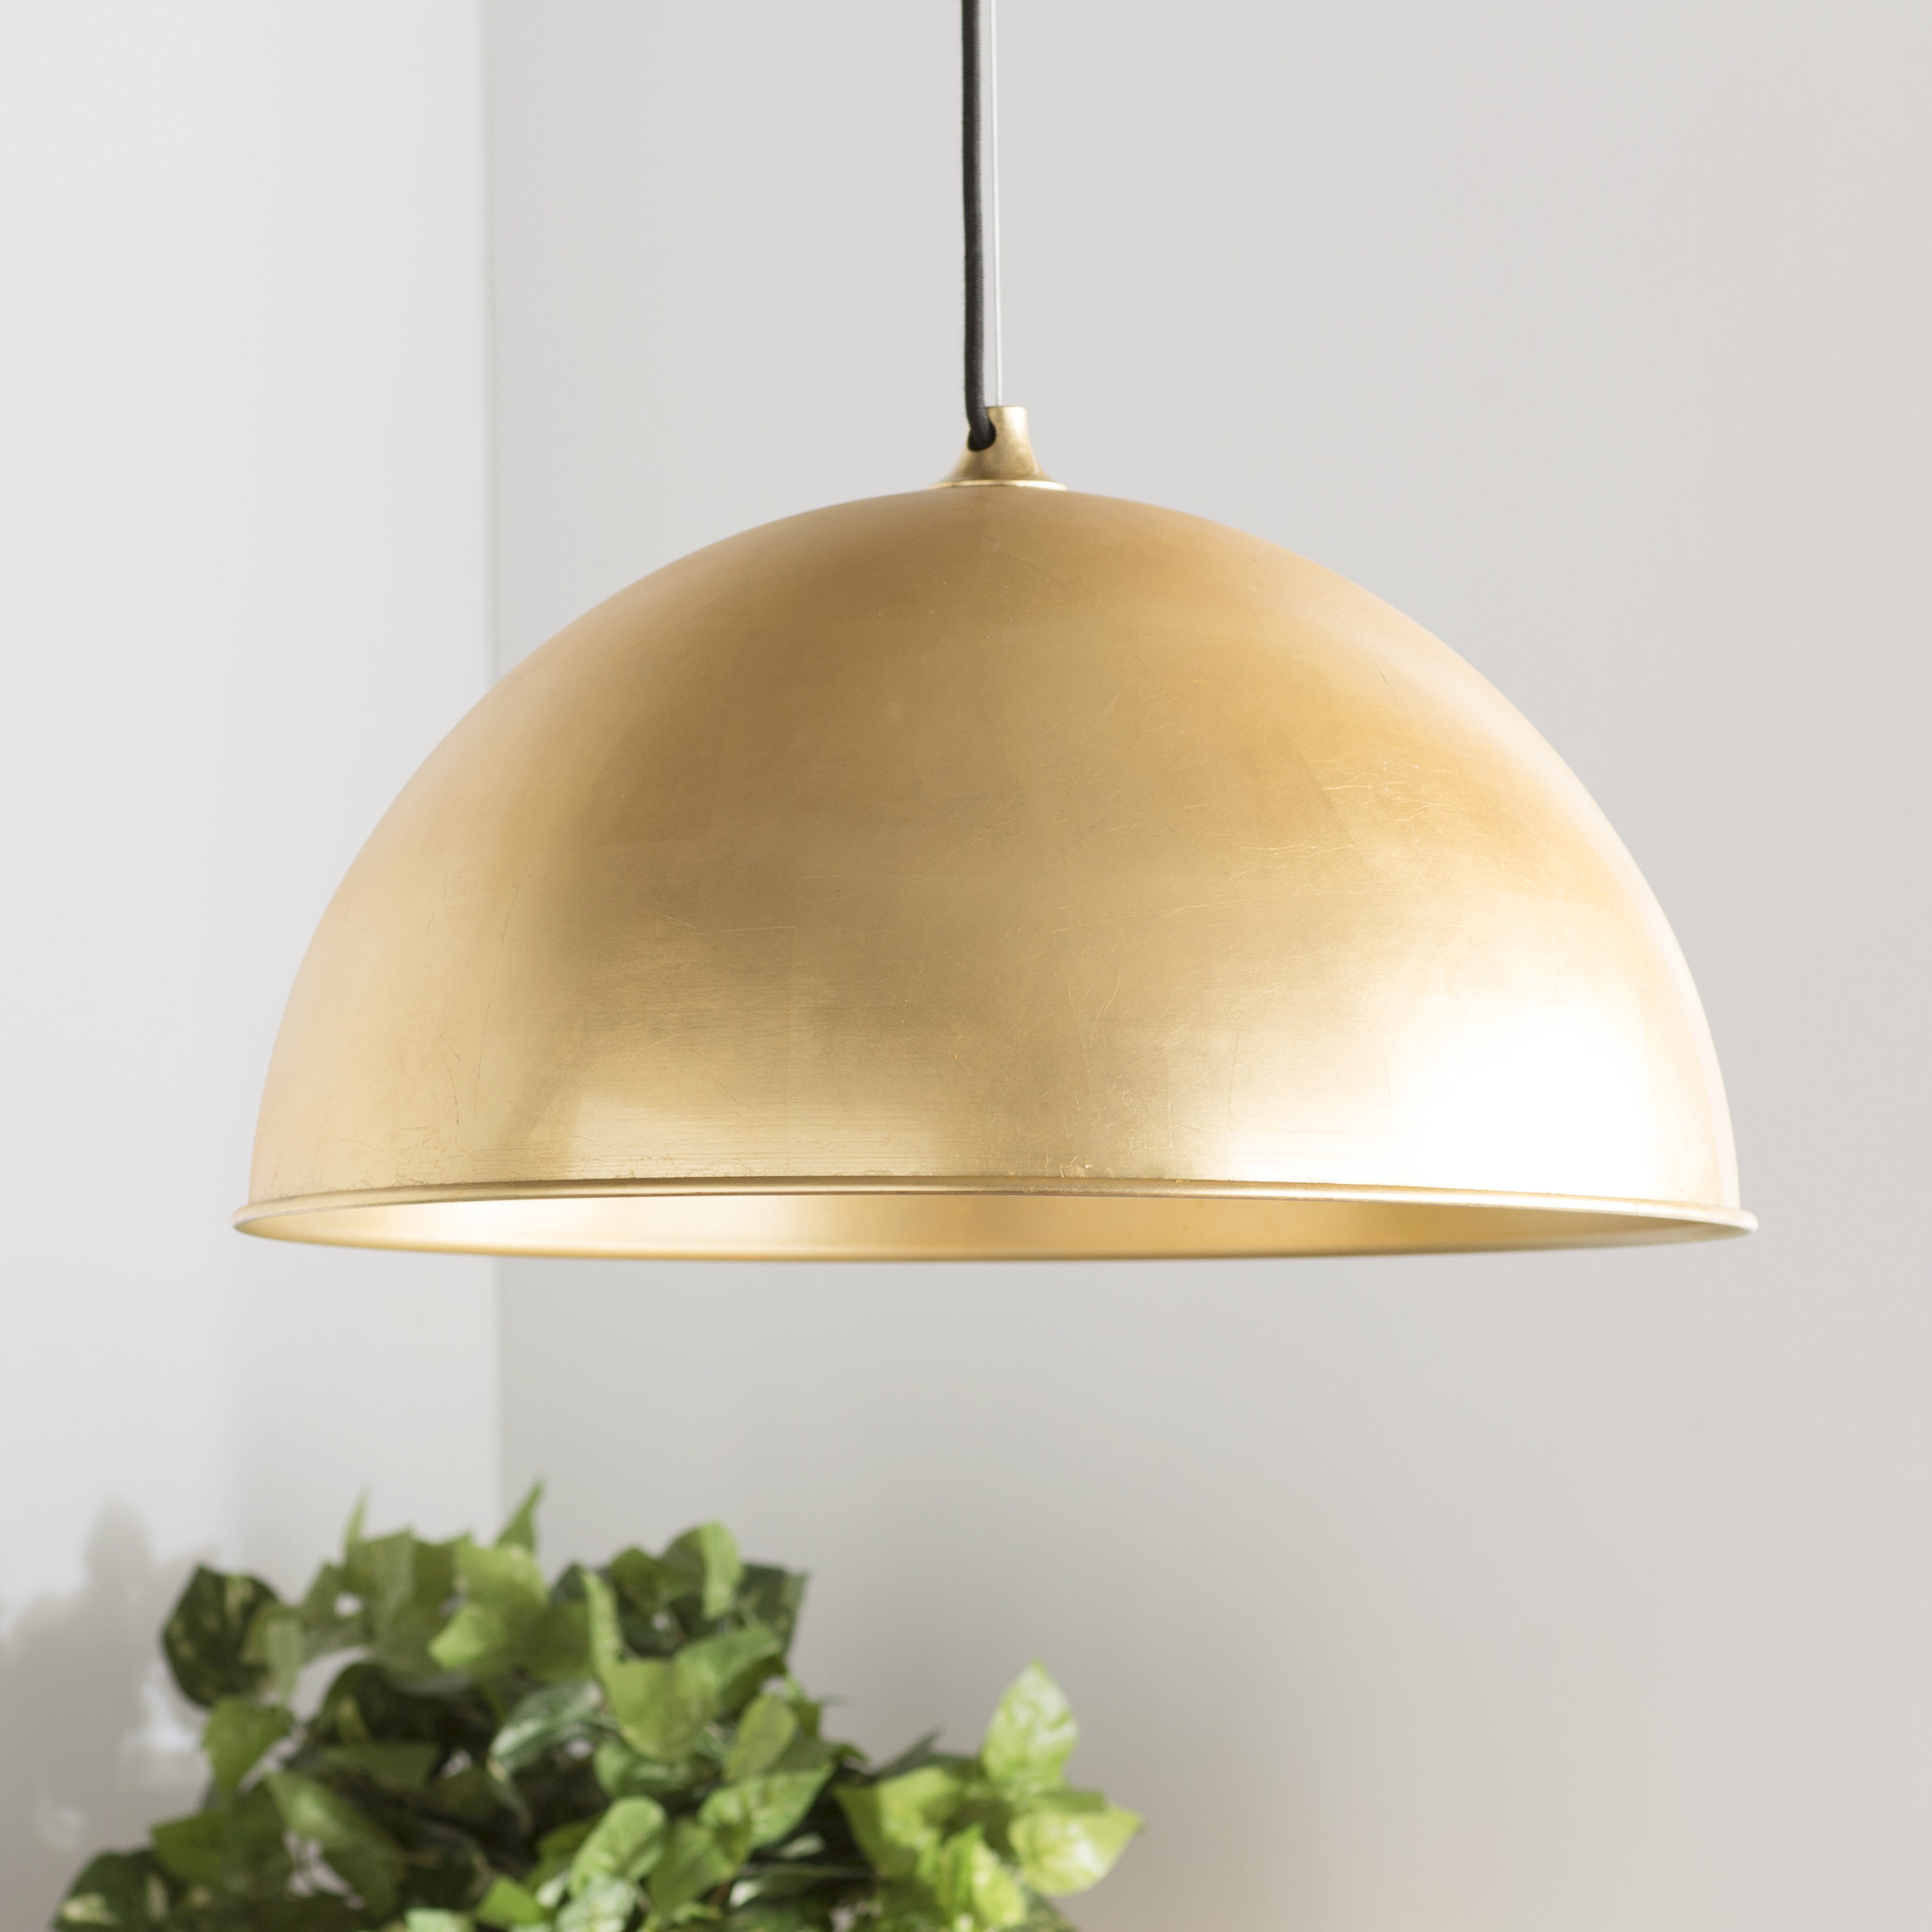 Maconay 1 Light Single Dome Pendant With Newest Macon 1 Light Single Dome Pendants (View 15 of 25)